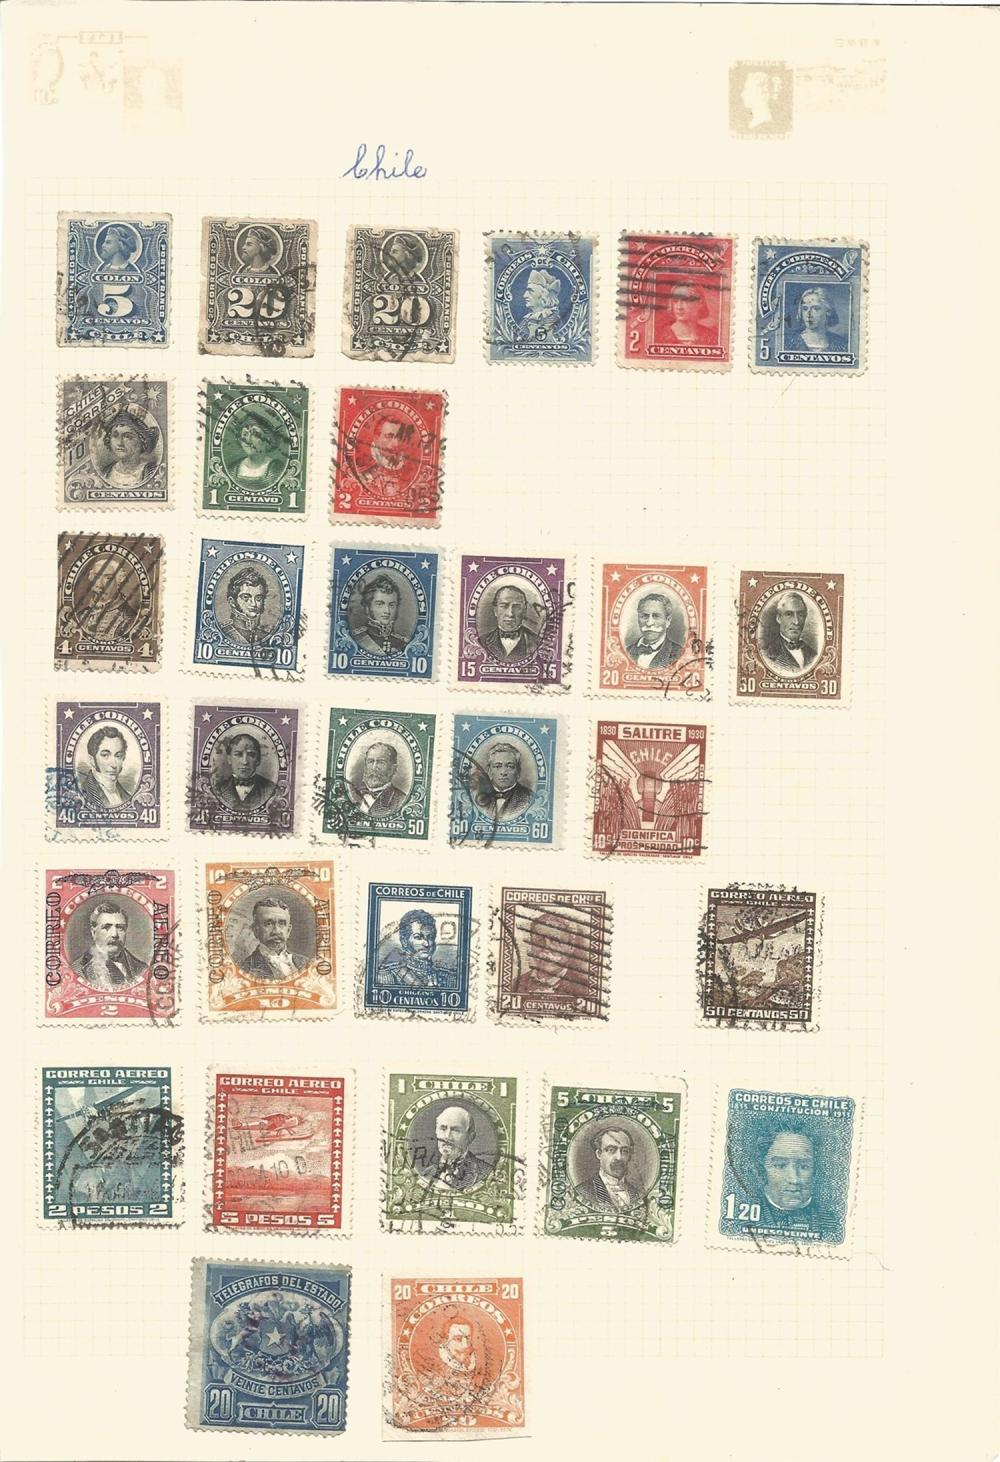 Peru, Brazil, Bolivia, Cuba, Colombia, Chile, stamps on loose sheets, approx. 70. Good condition. We